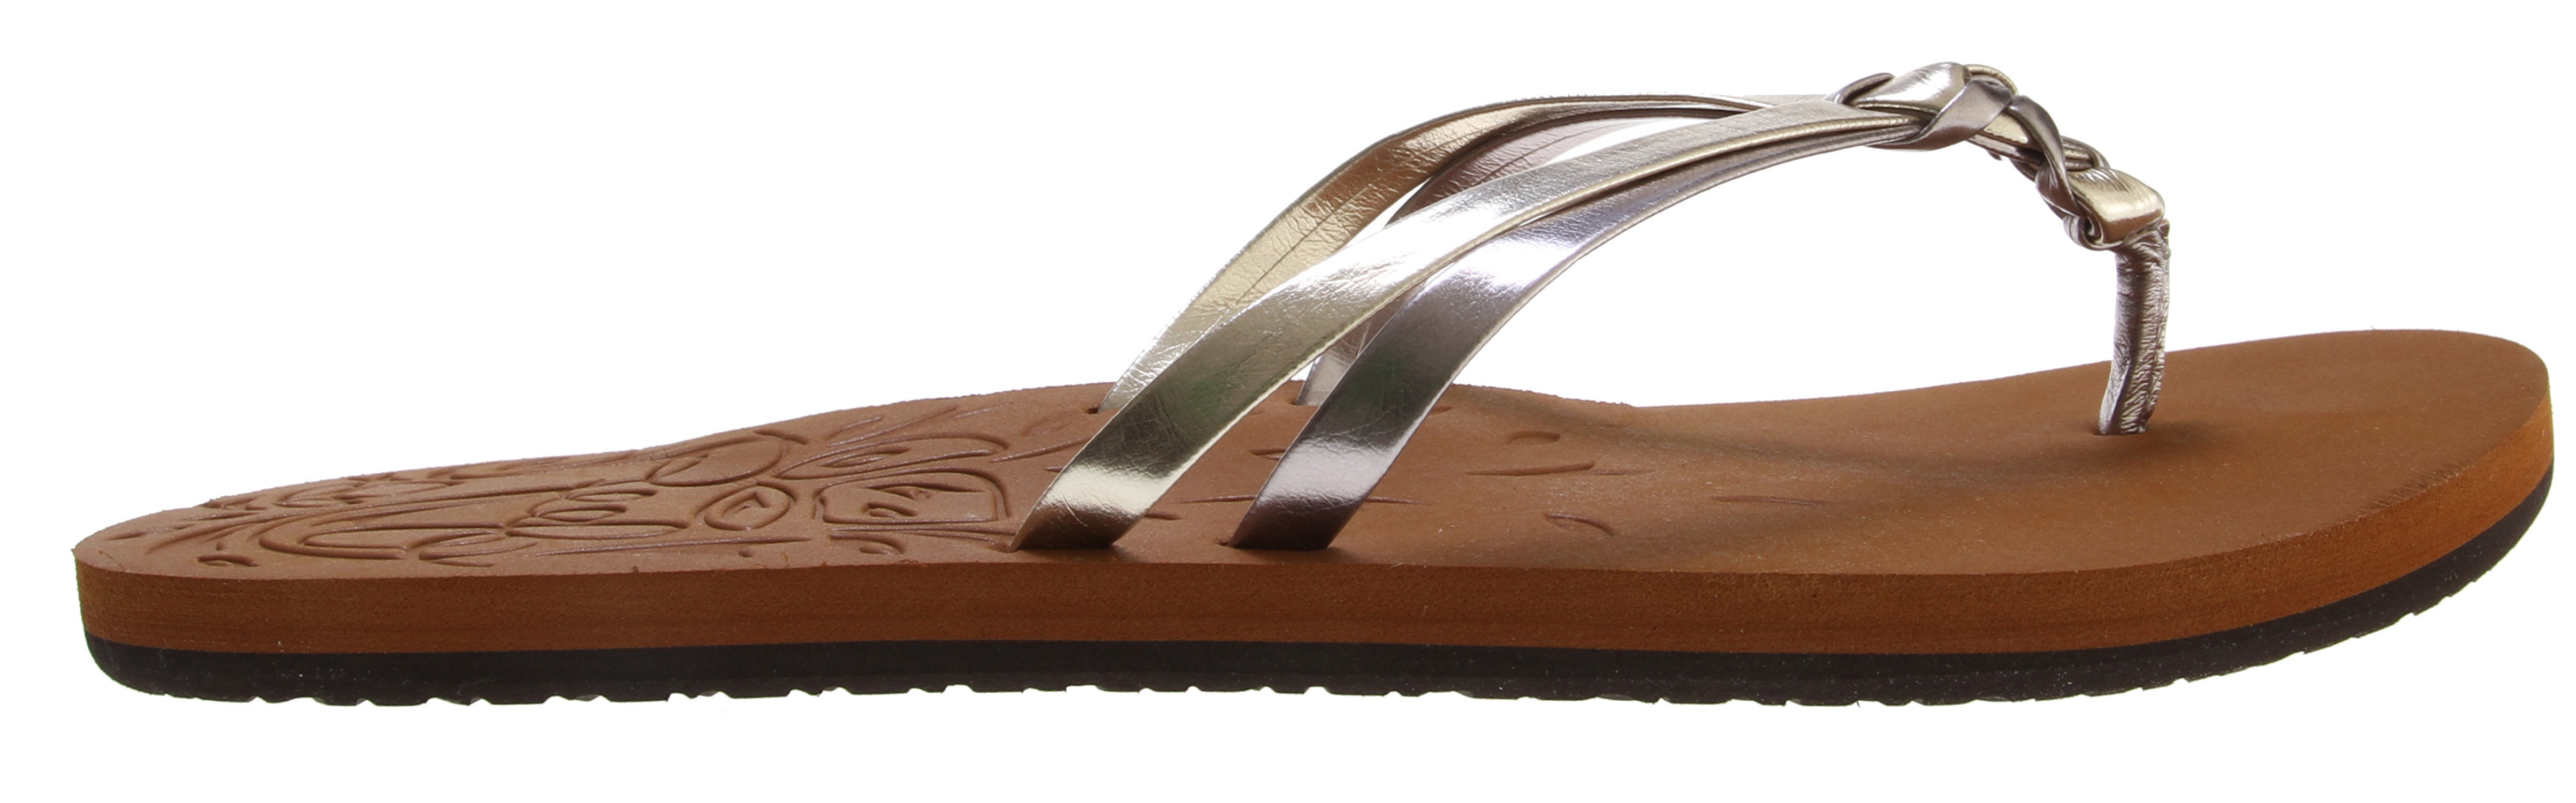 Surf Key Features of the Reef Kendall 2 Sandals: Synthetic strap featuring knot detail Eva footbed with embossed detail print and anatomical arch support Rubber sponge outsole for flexibility - $20.95